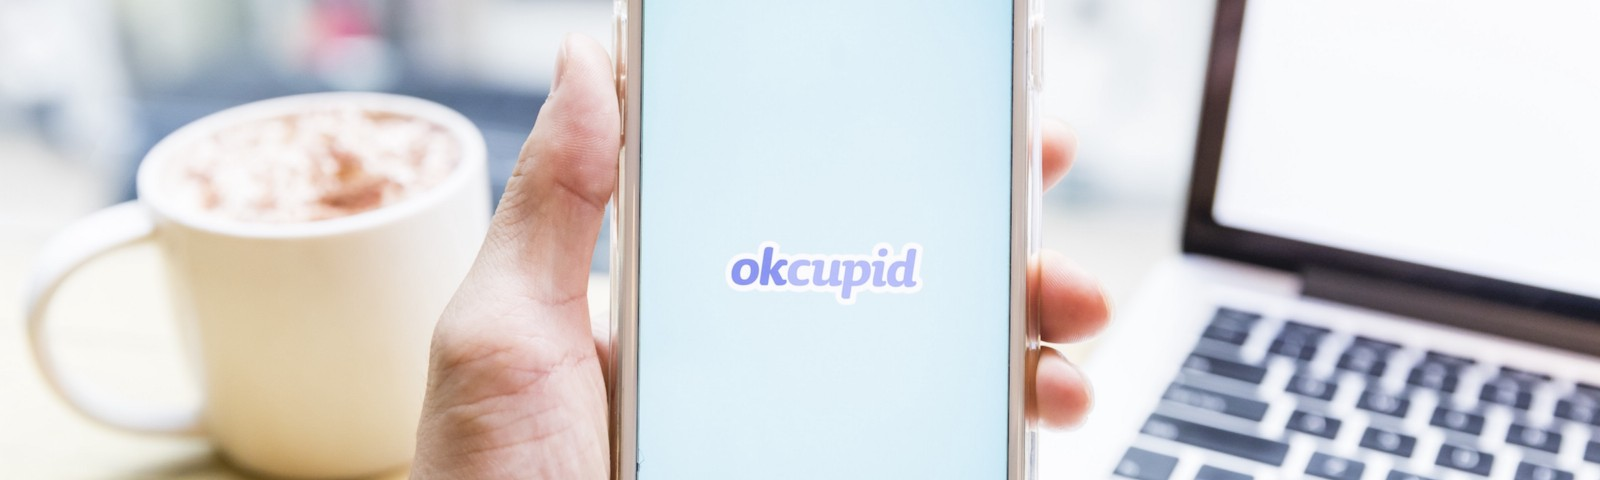 A hand holding a phone with the dating app OkCupid on its screen.